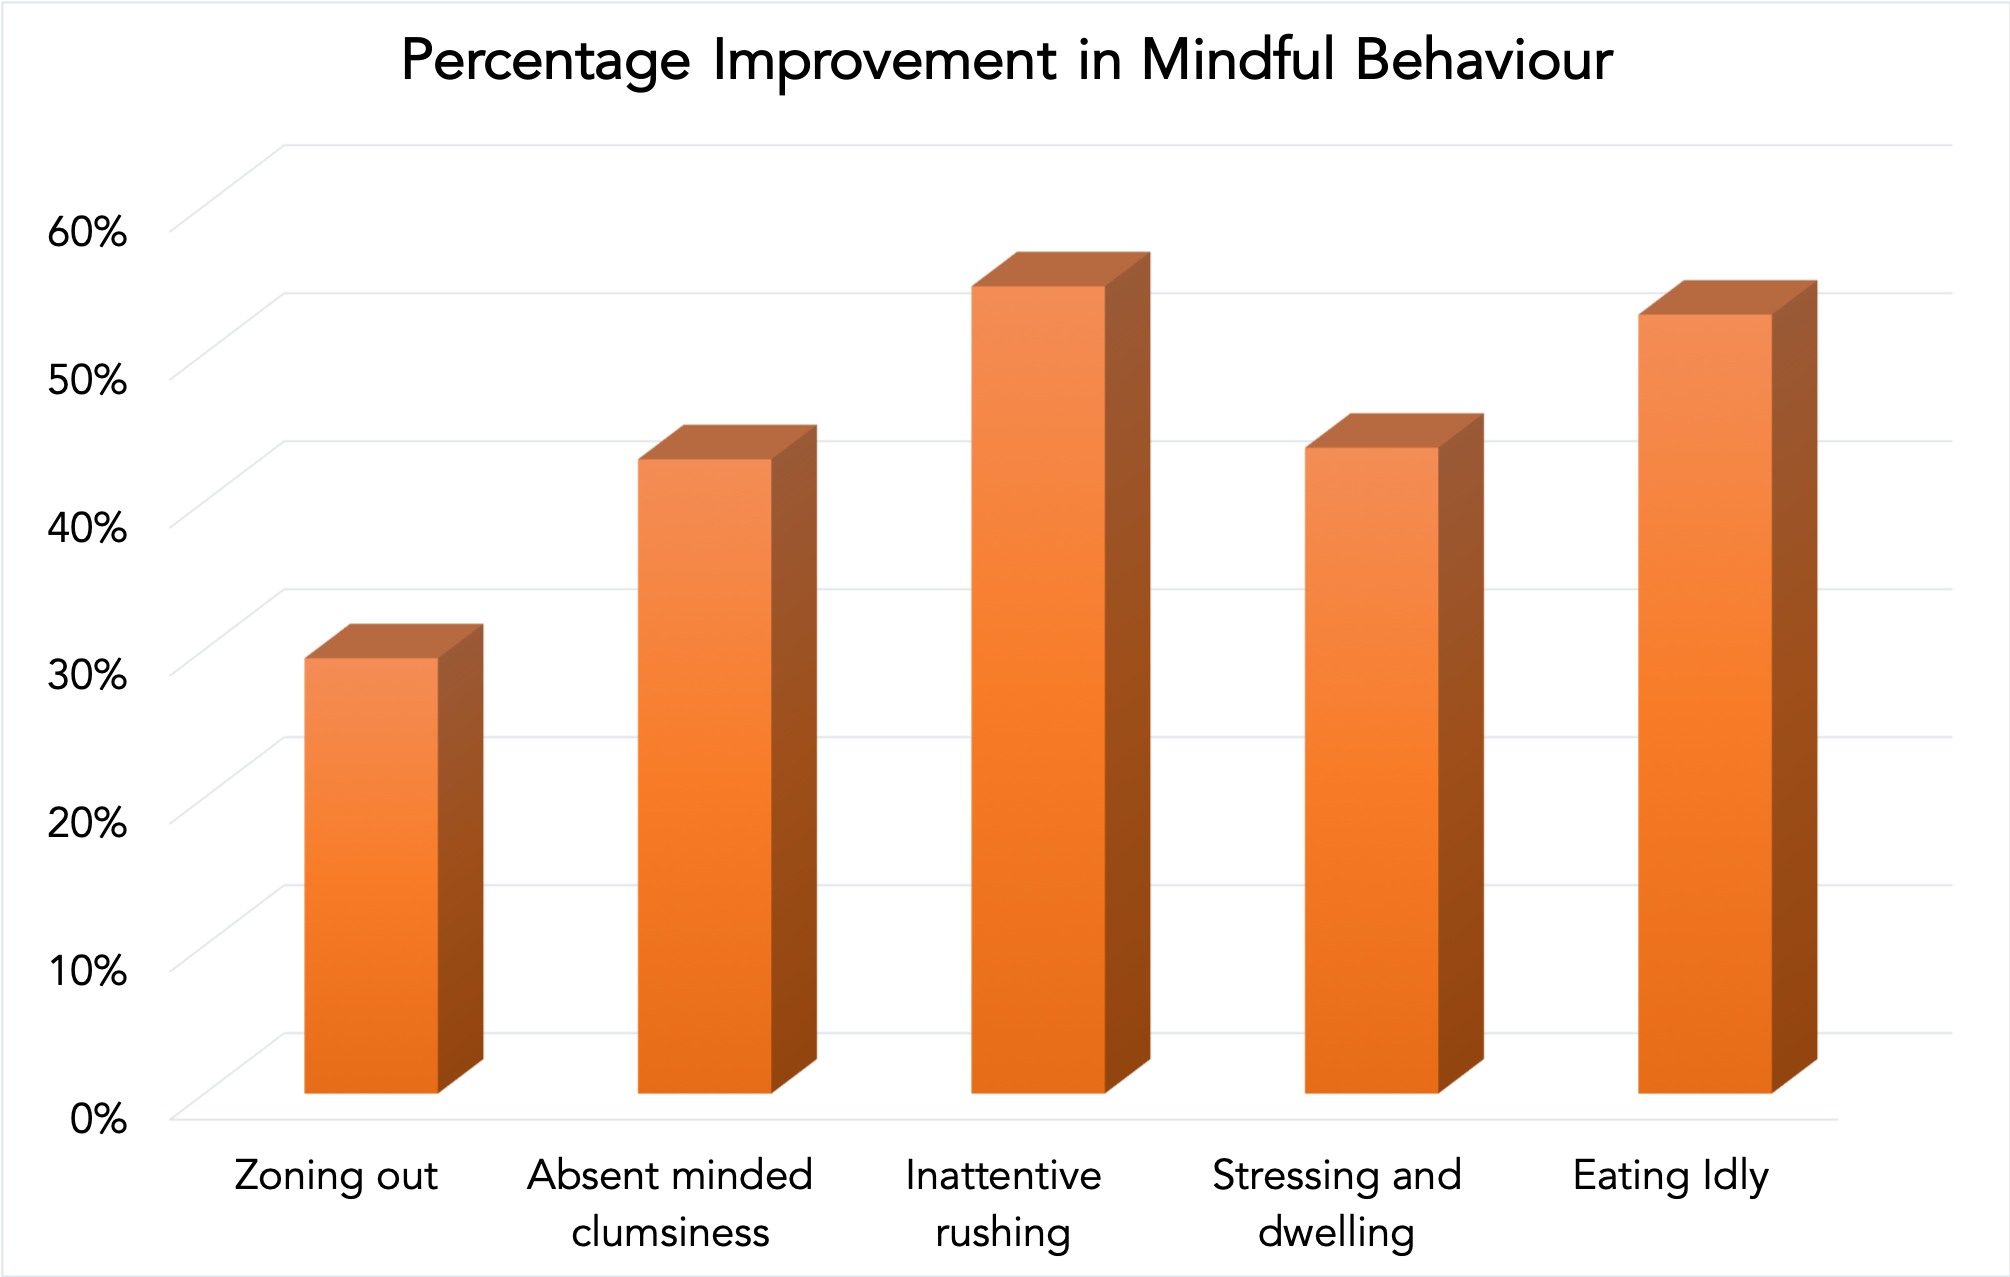 The percentage improvement in mindful behaviour after the course